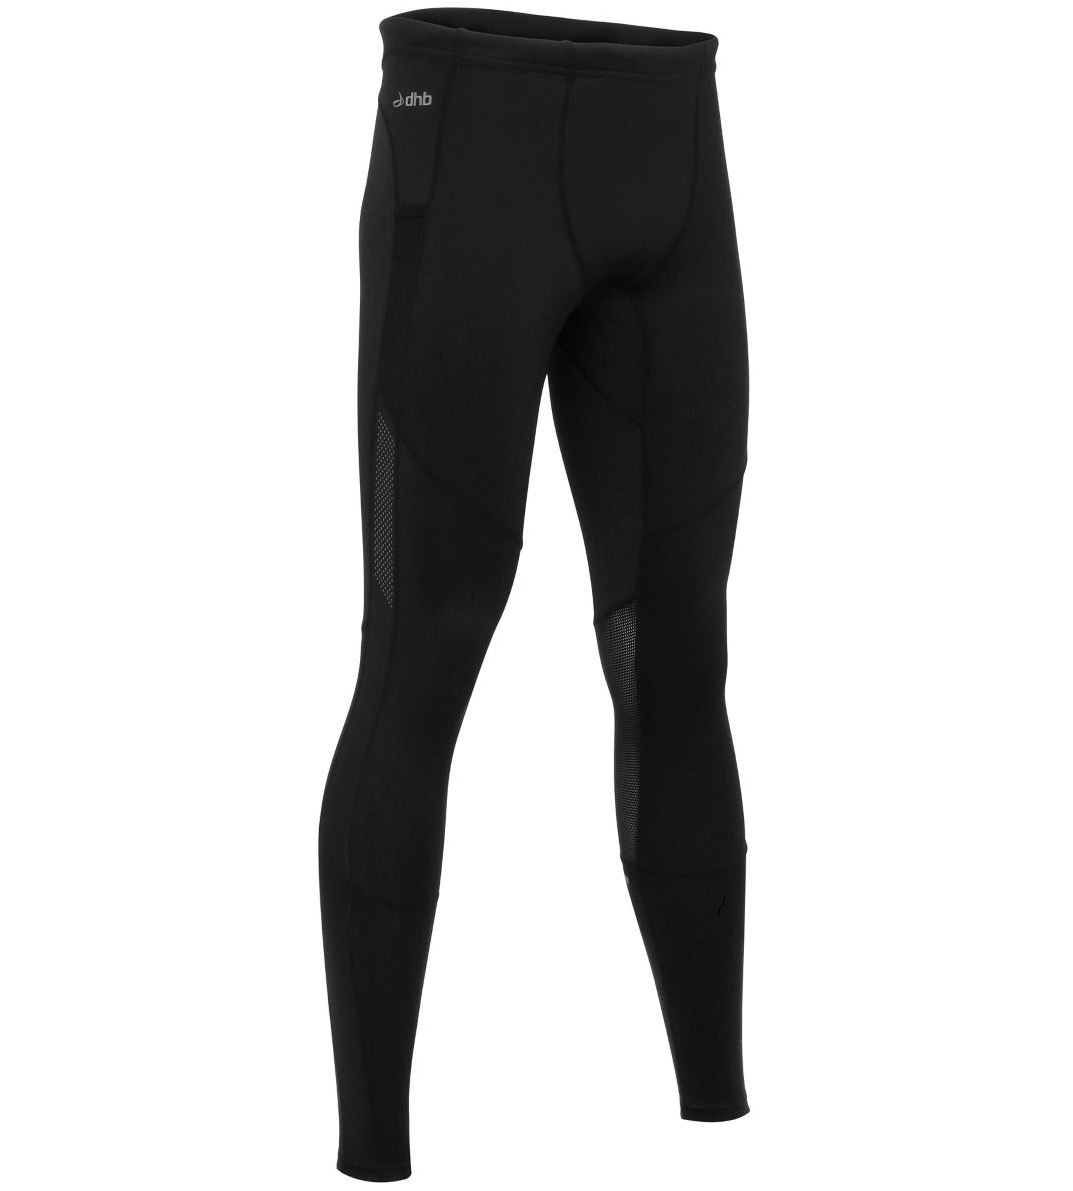 Mallas DHB Run Tech Tight